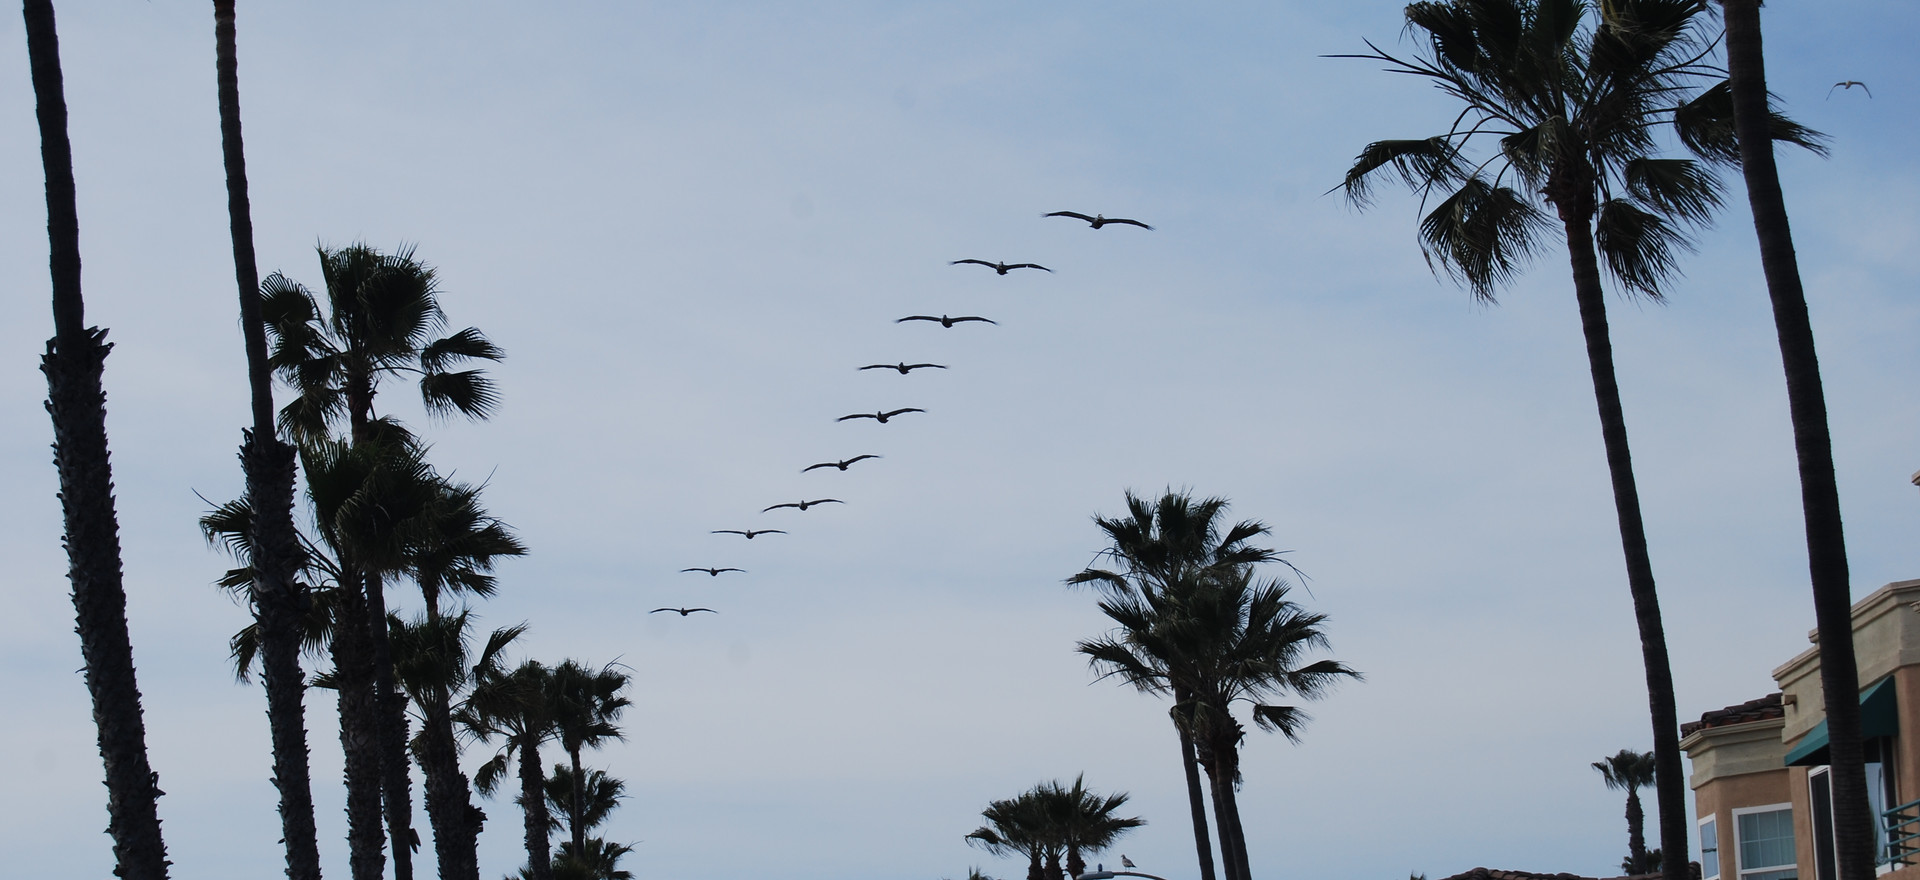 Pelicans in a row